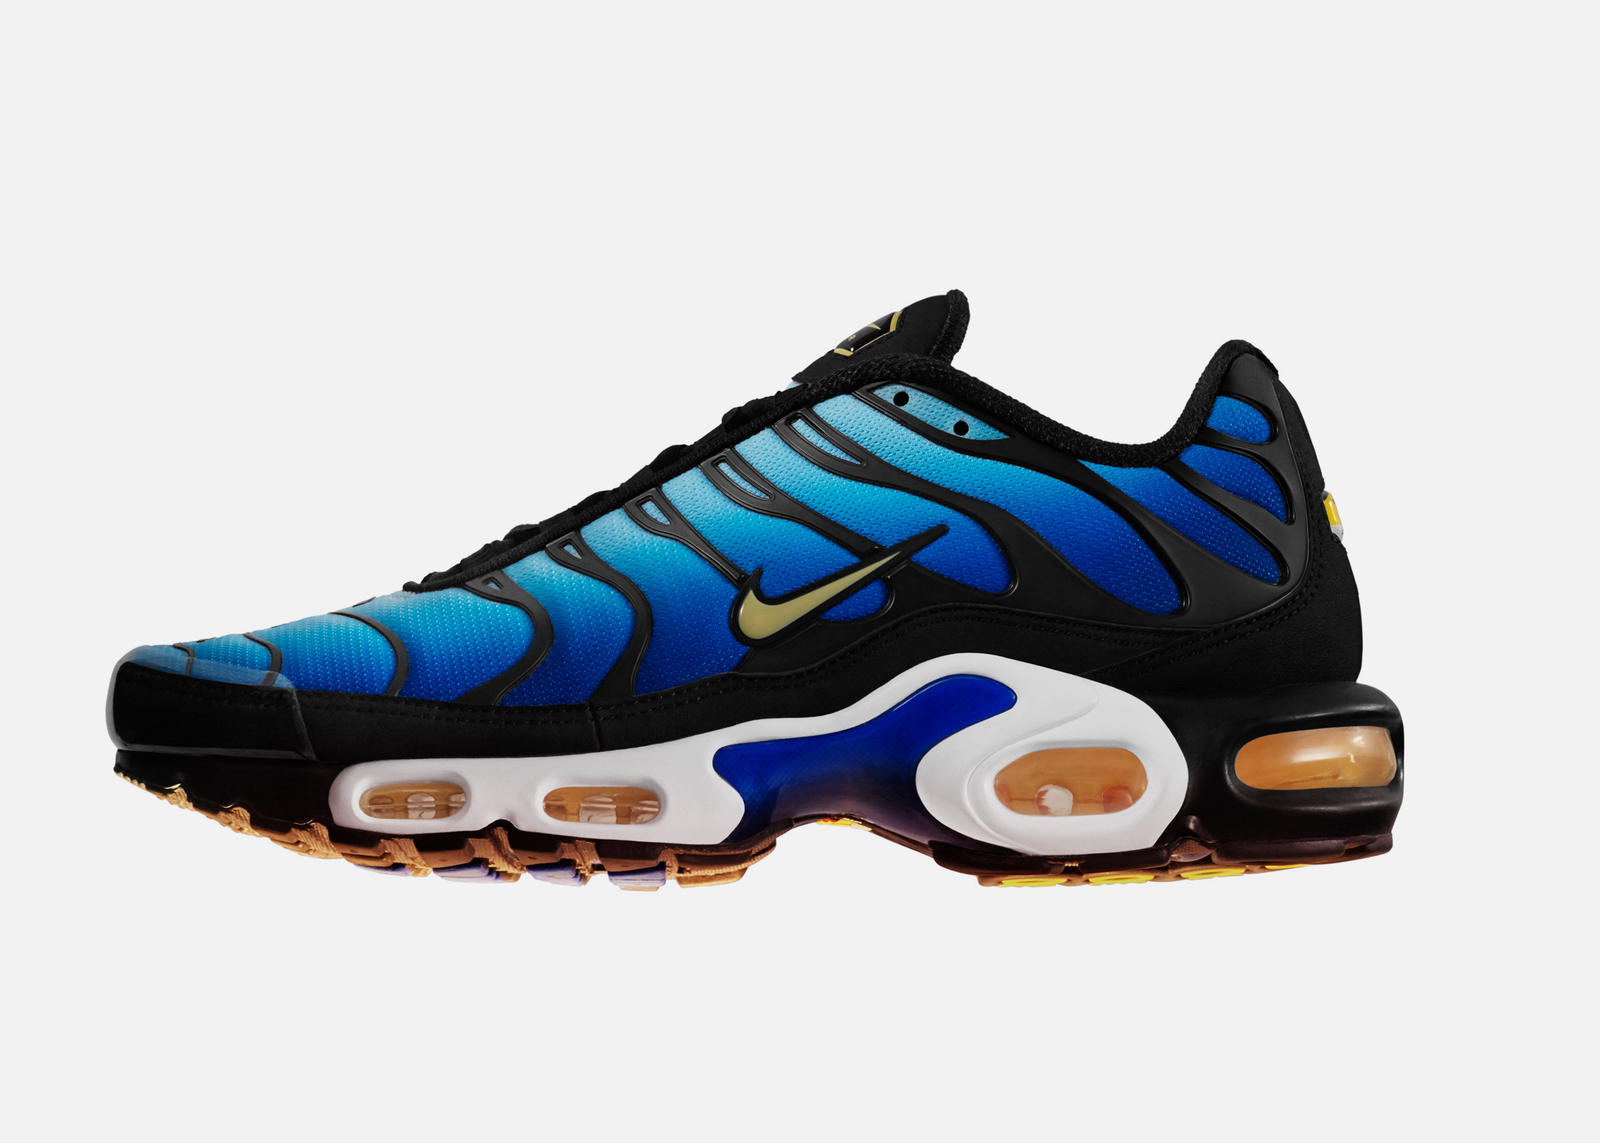 online retailer 888c2 11877 The Untold Story of the Nike Air Max Plus 20